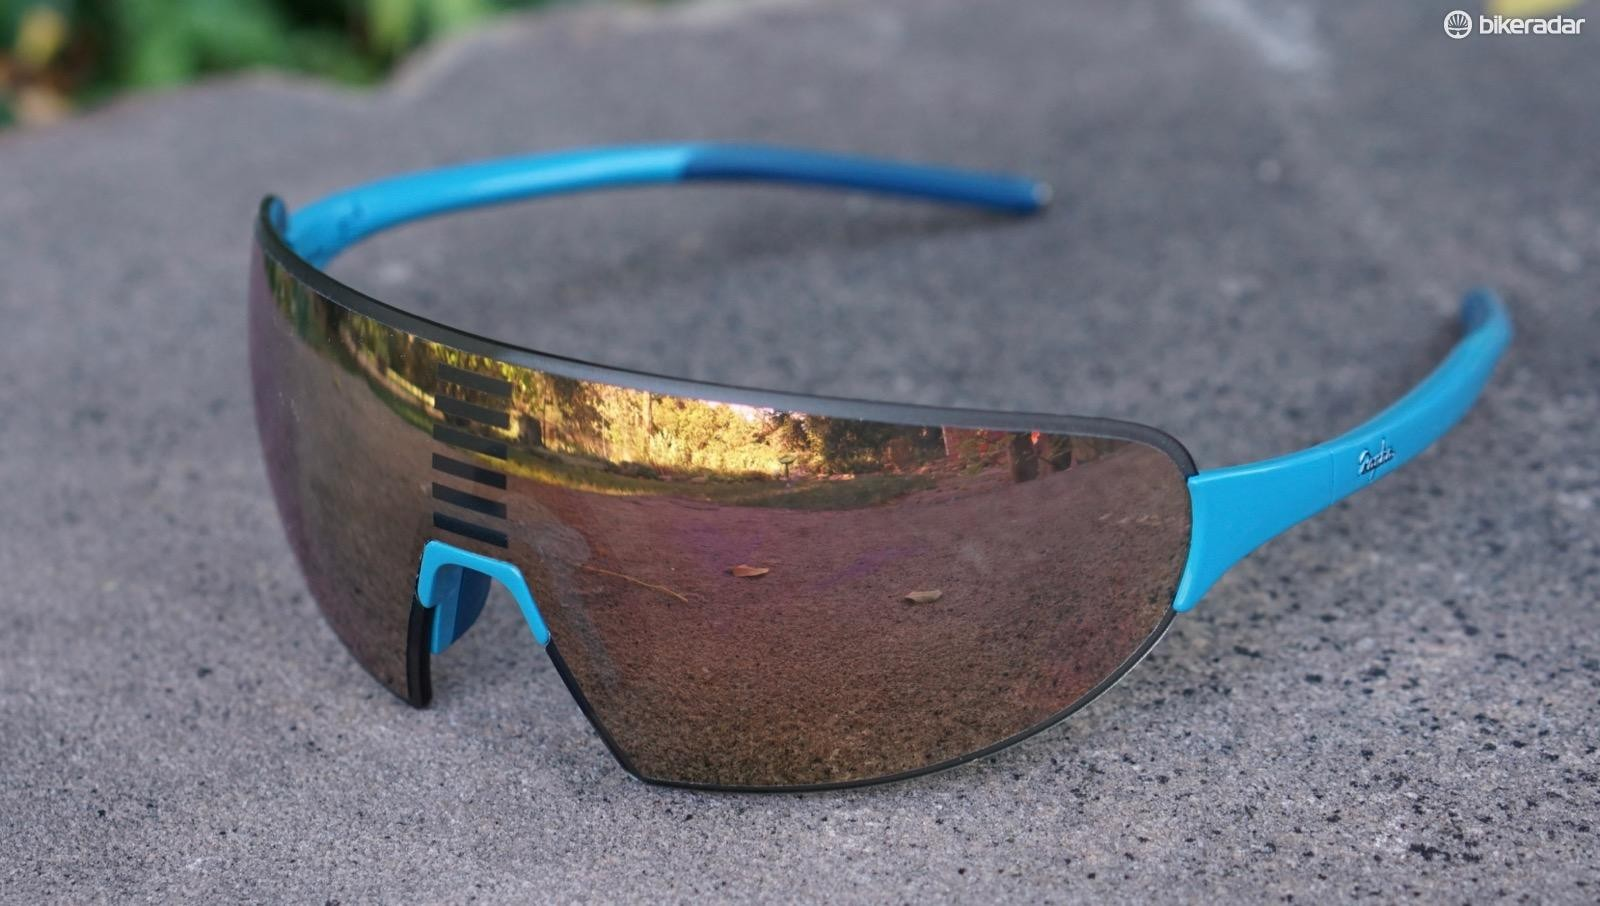 Rapha Pro Team Flyweight sunglasses live up to their name